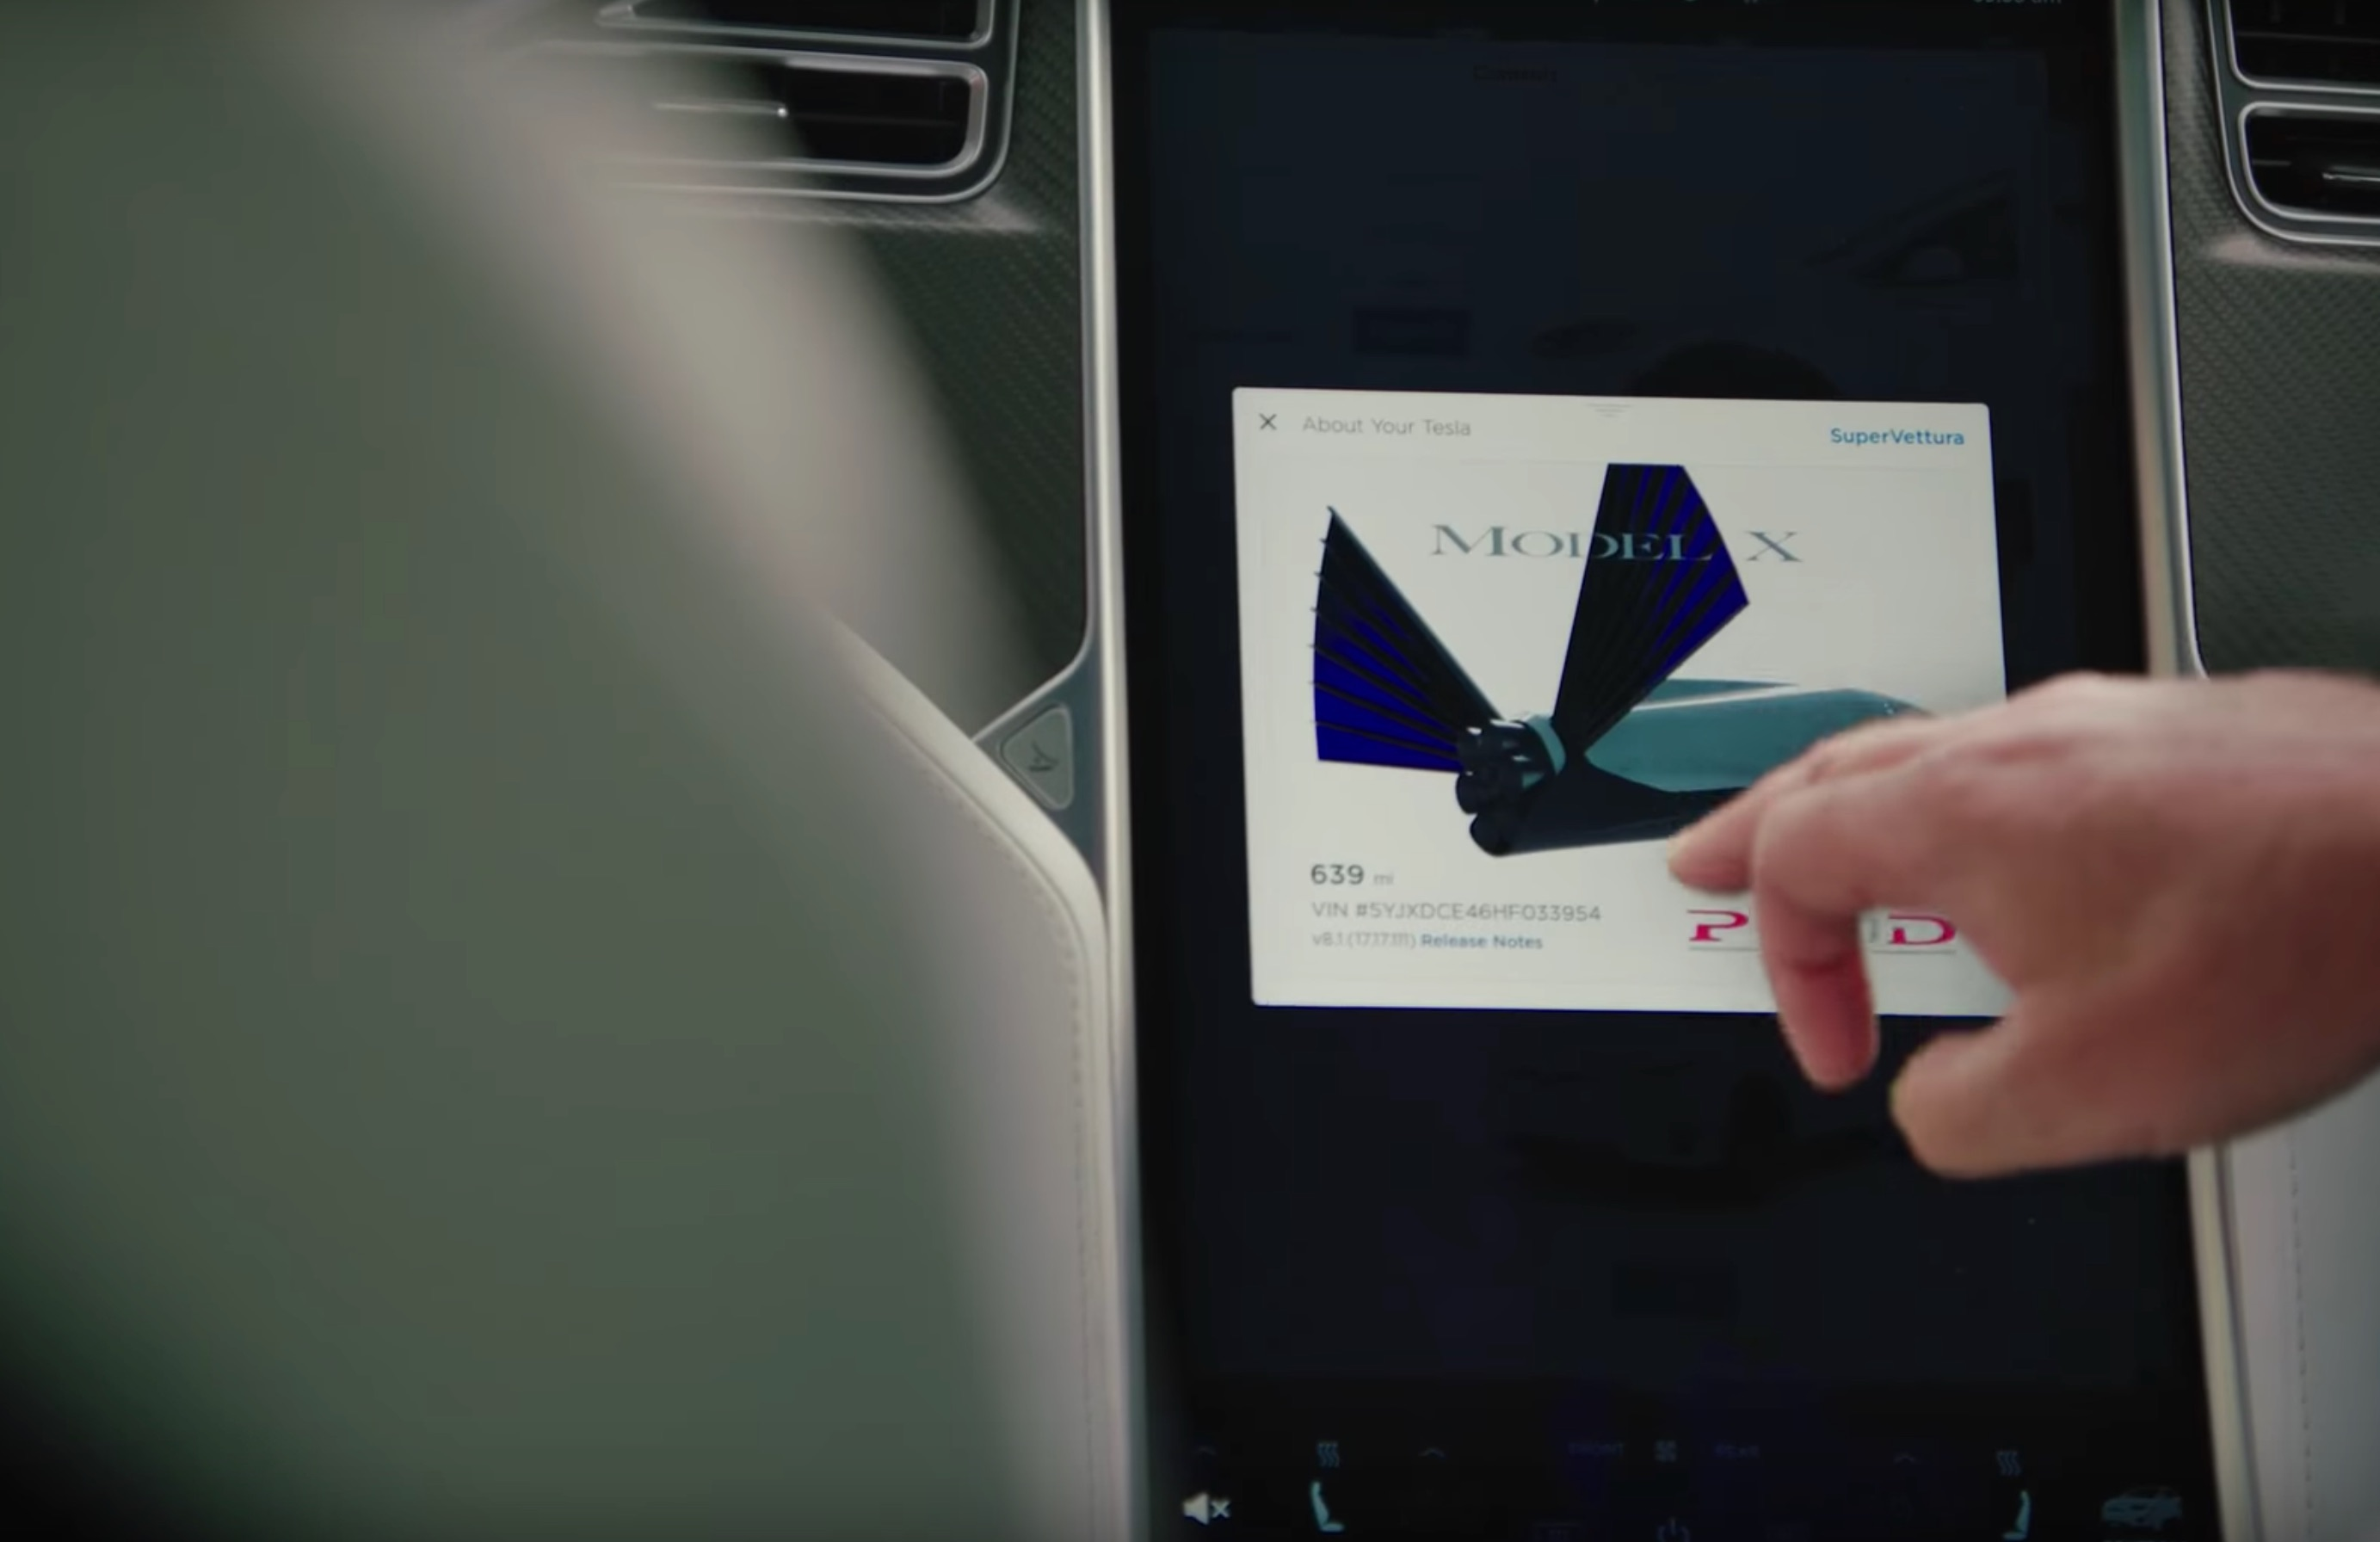 jeremy-clarkson-grand-tour-tesla-model-x-easter-eggs